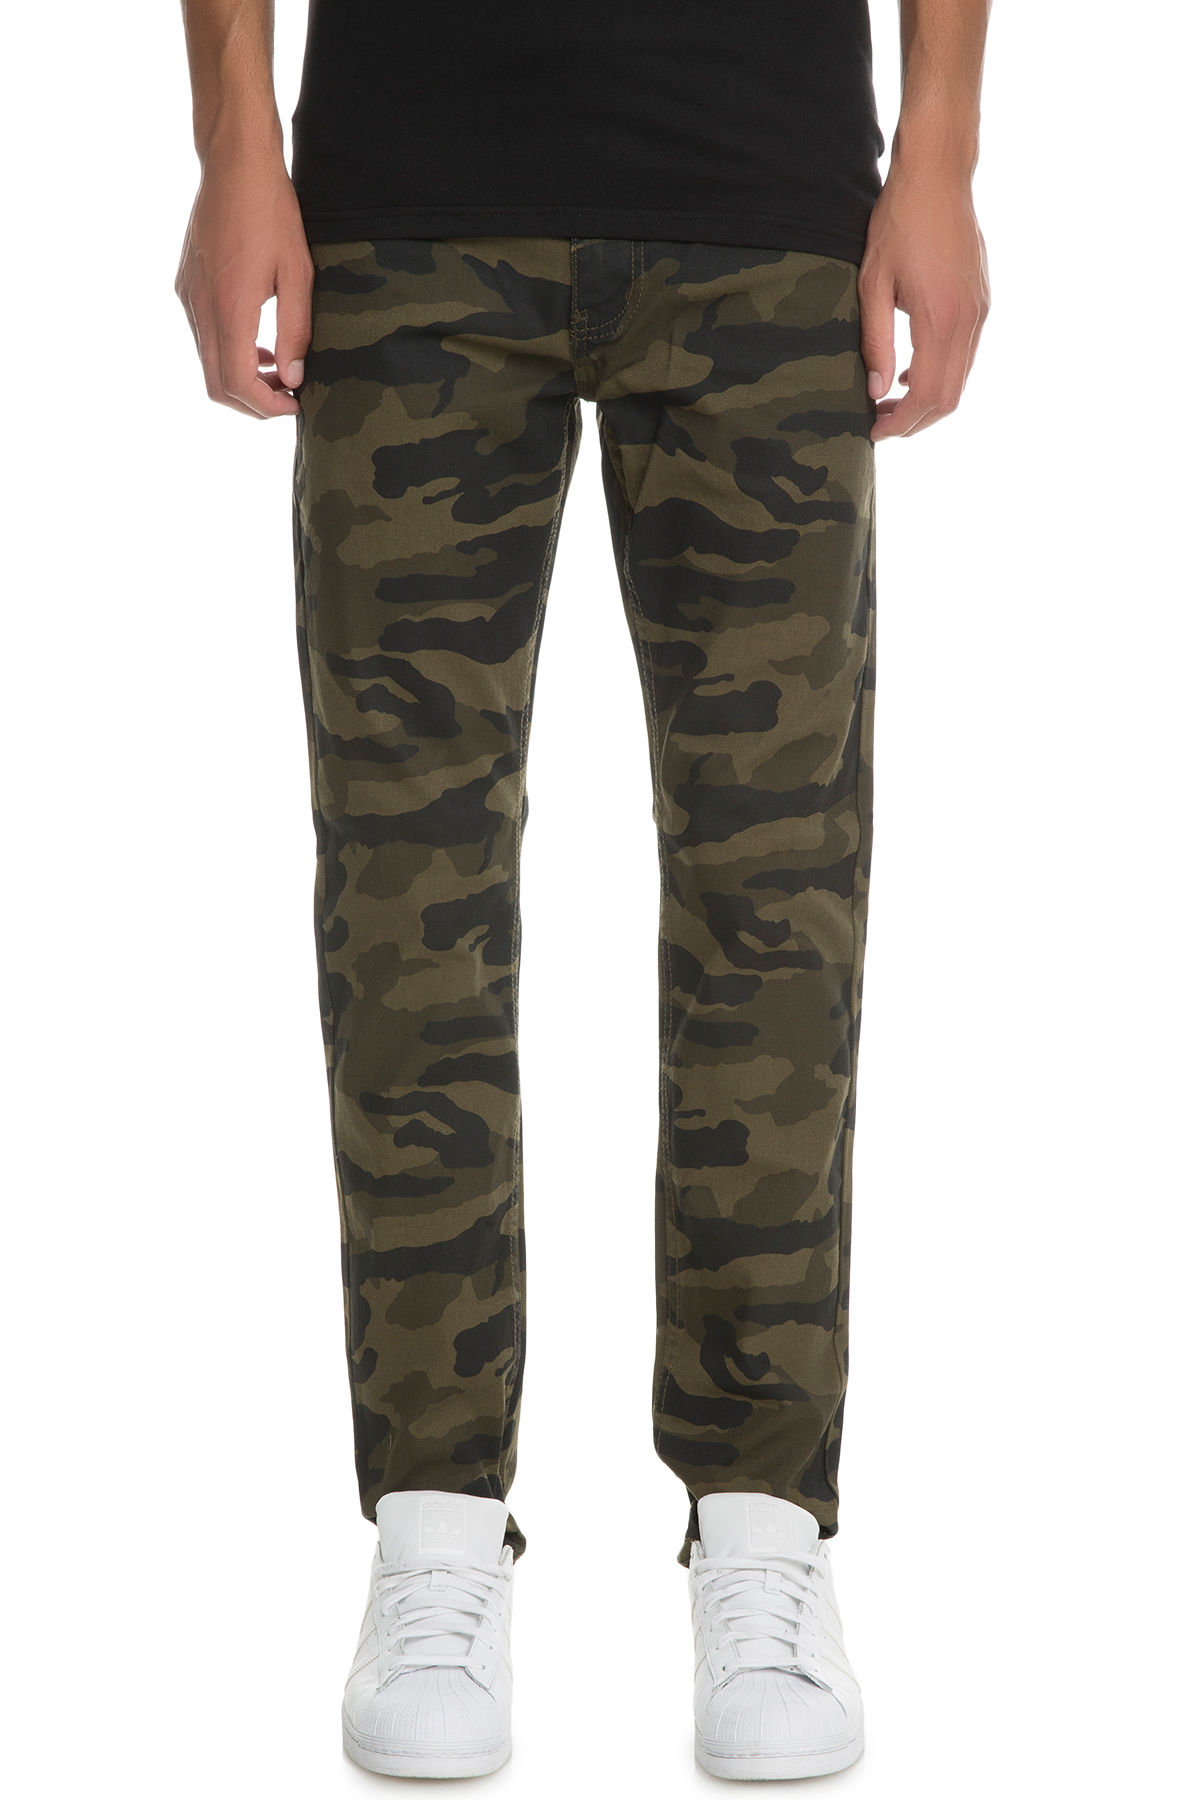 Image of The Skinny Jeans in Camo